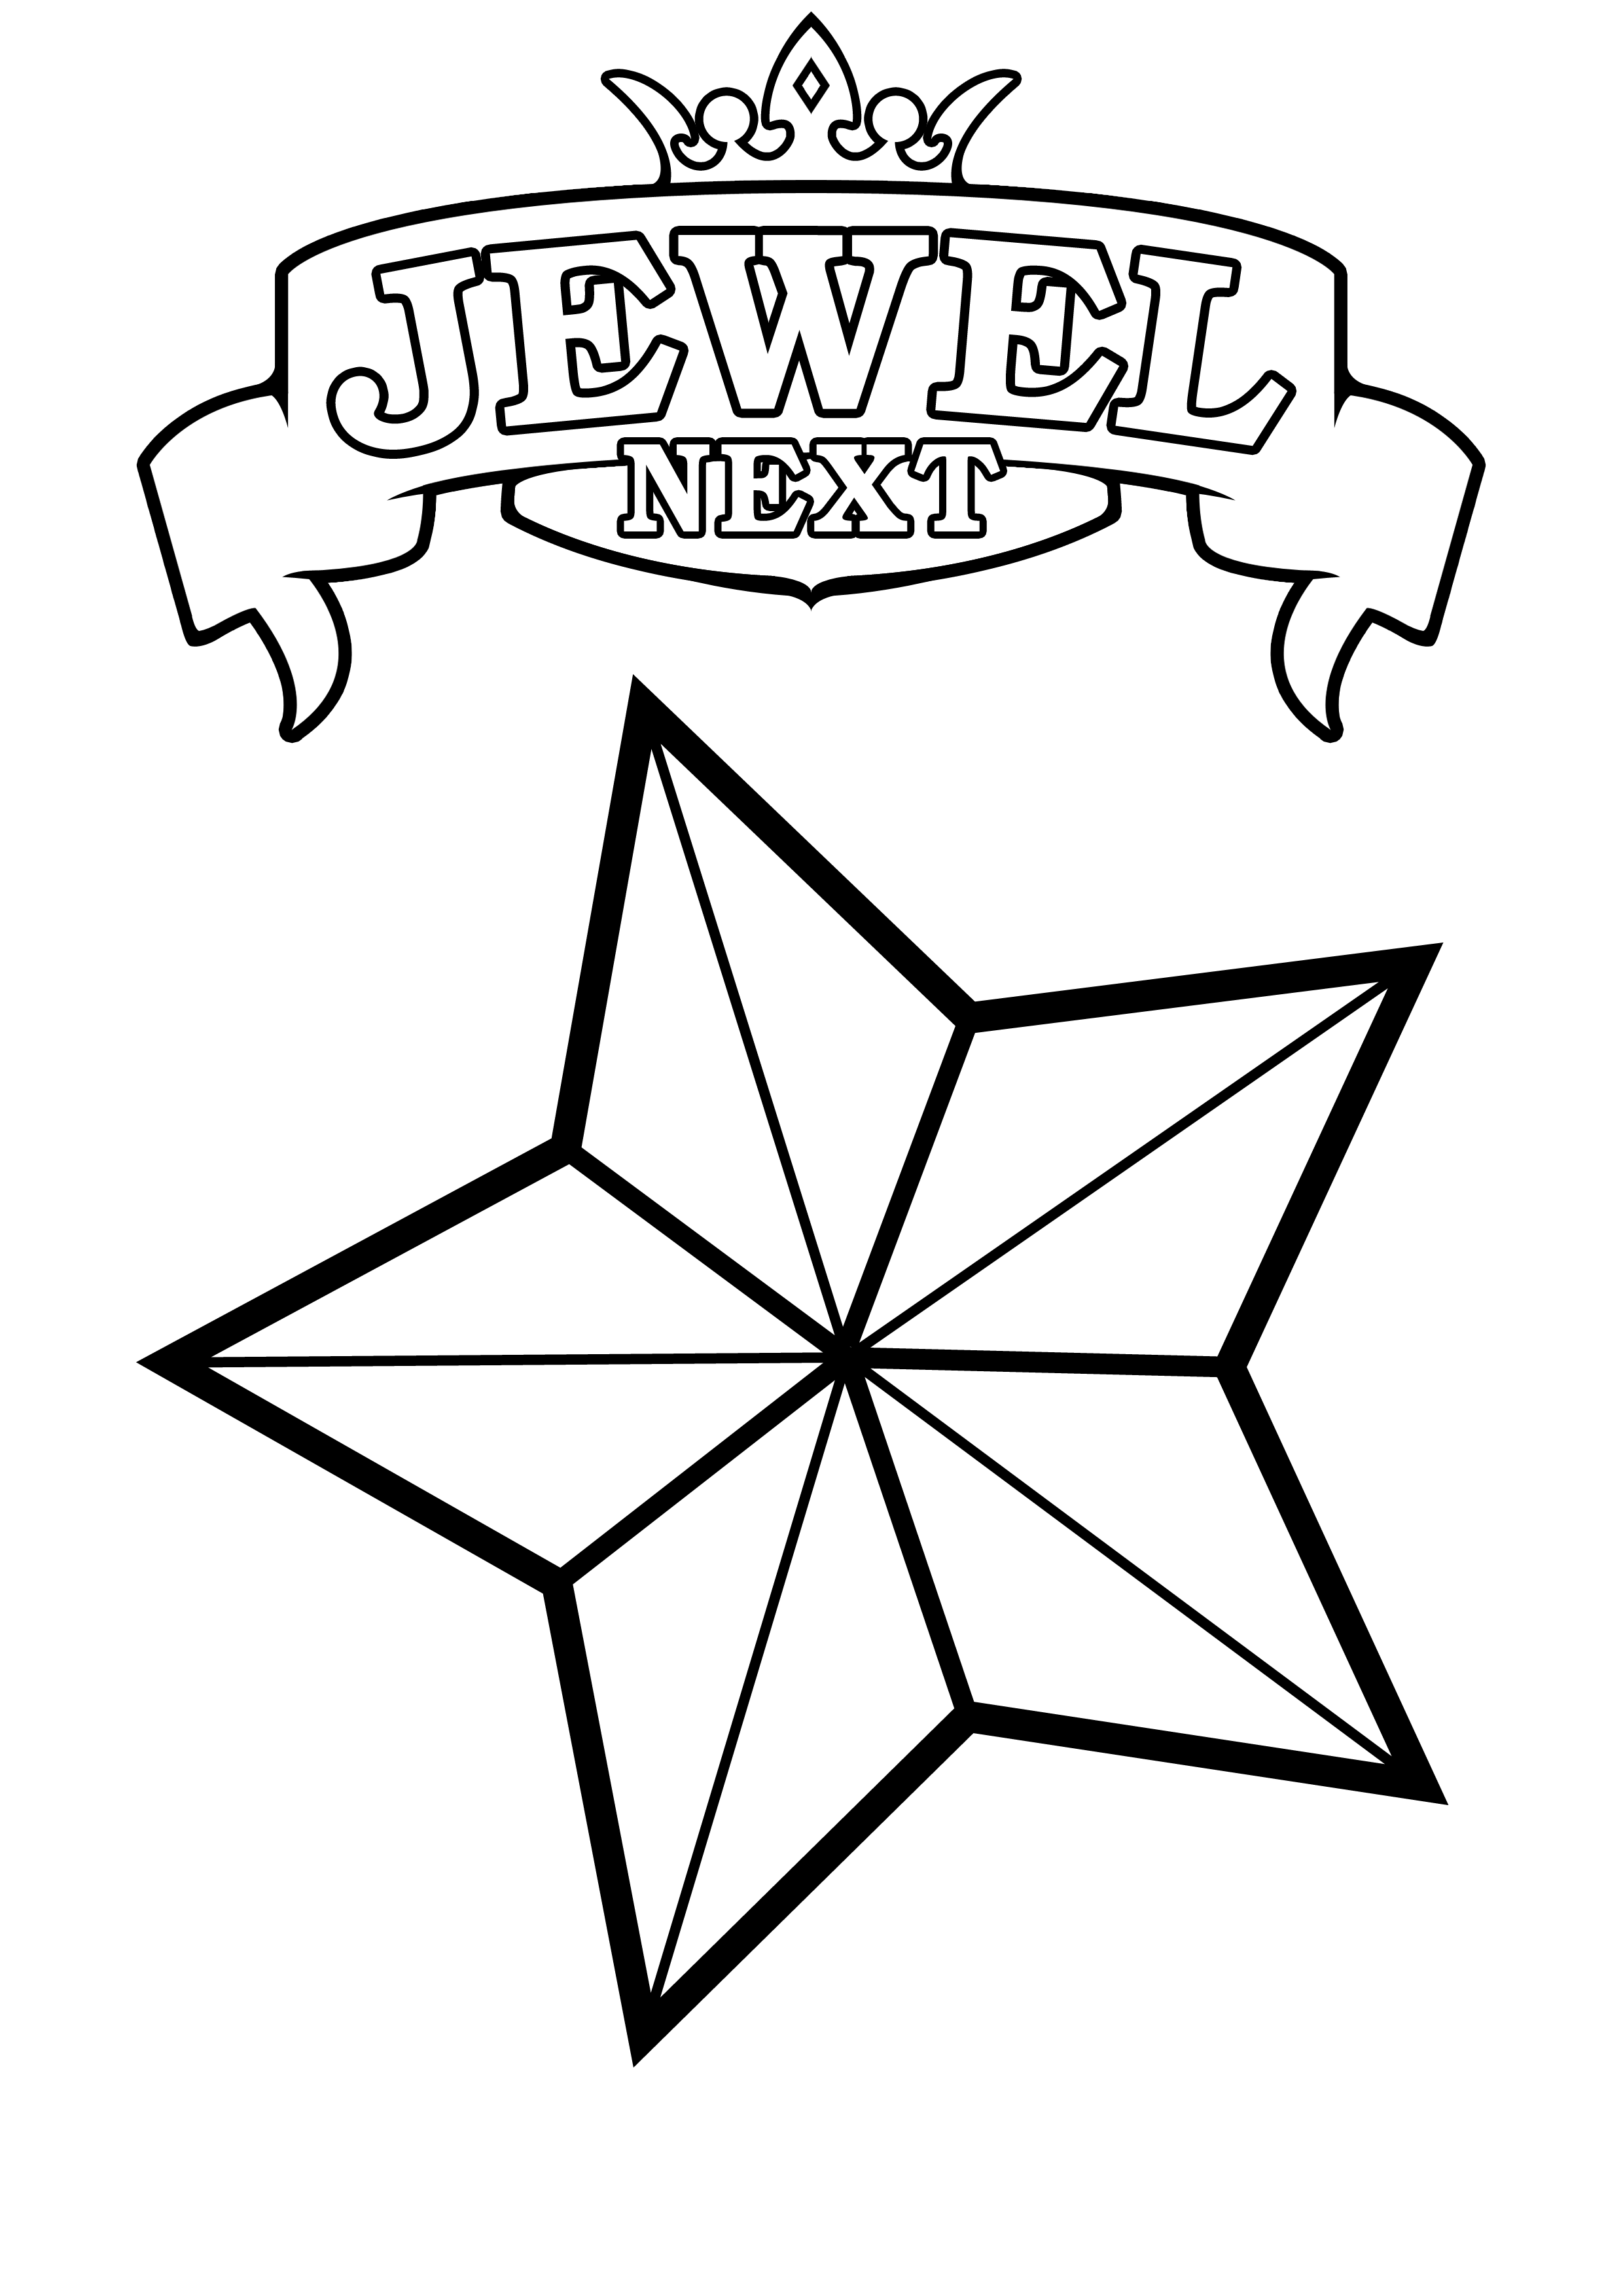 star outline coloring page free shooting star coloring pages download free clip art star outline page coloring